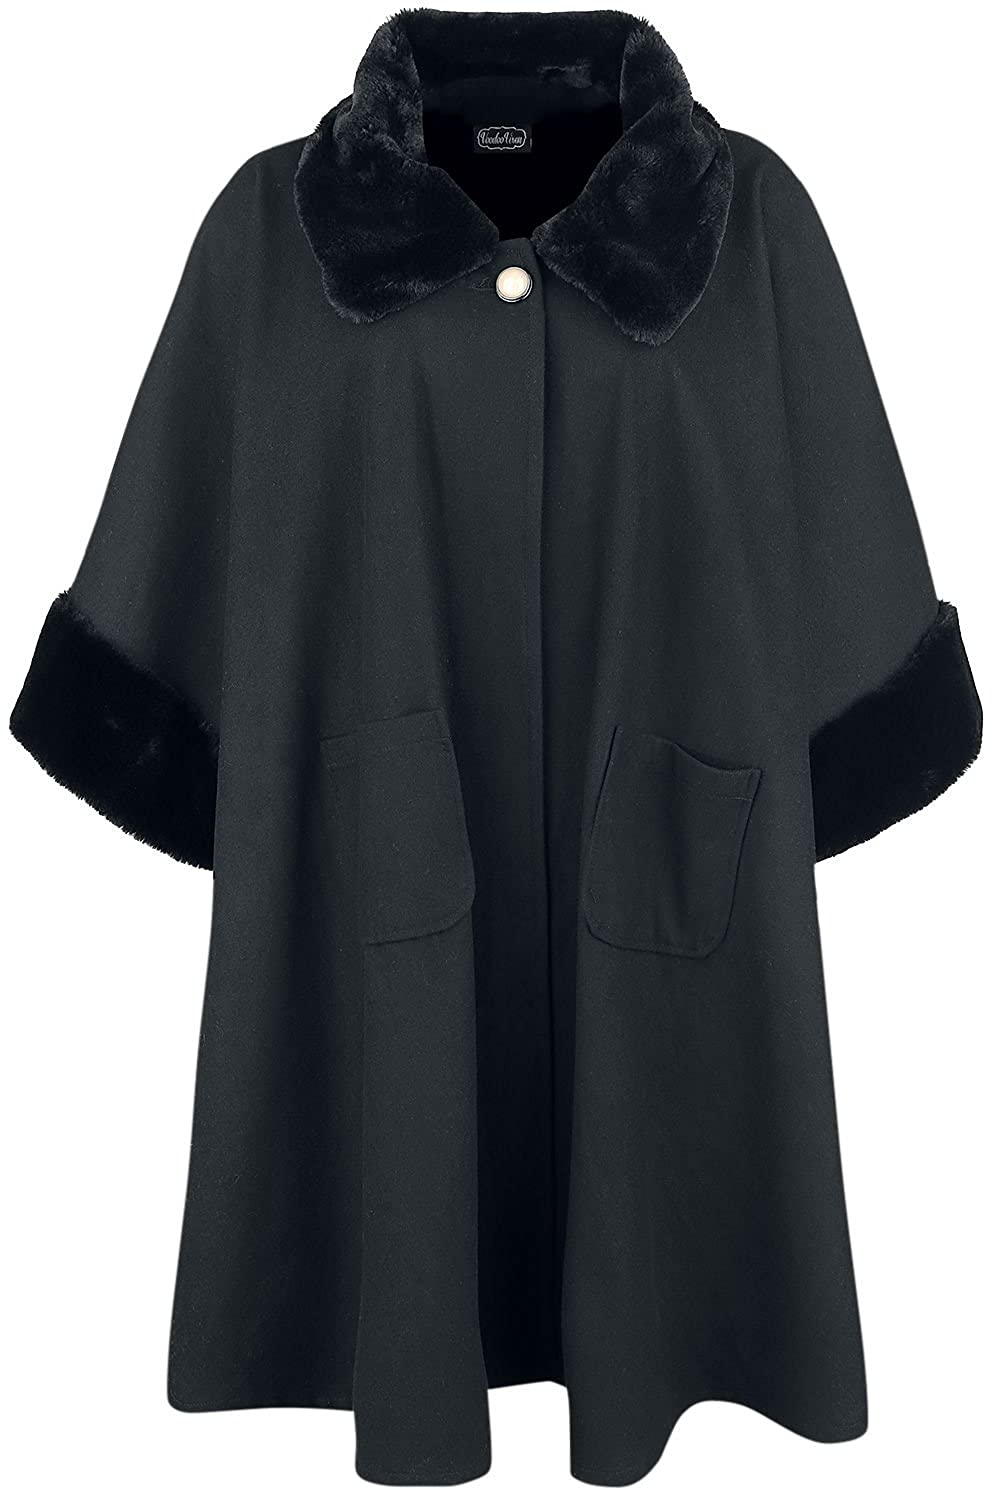 Vintage Coats & Jackets | Retro Coats and Jackets Voodoo Vixen Womens Melrose Faux Fur Cape (Black) $63.84 AT vintagedancer.com